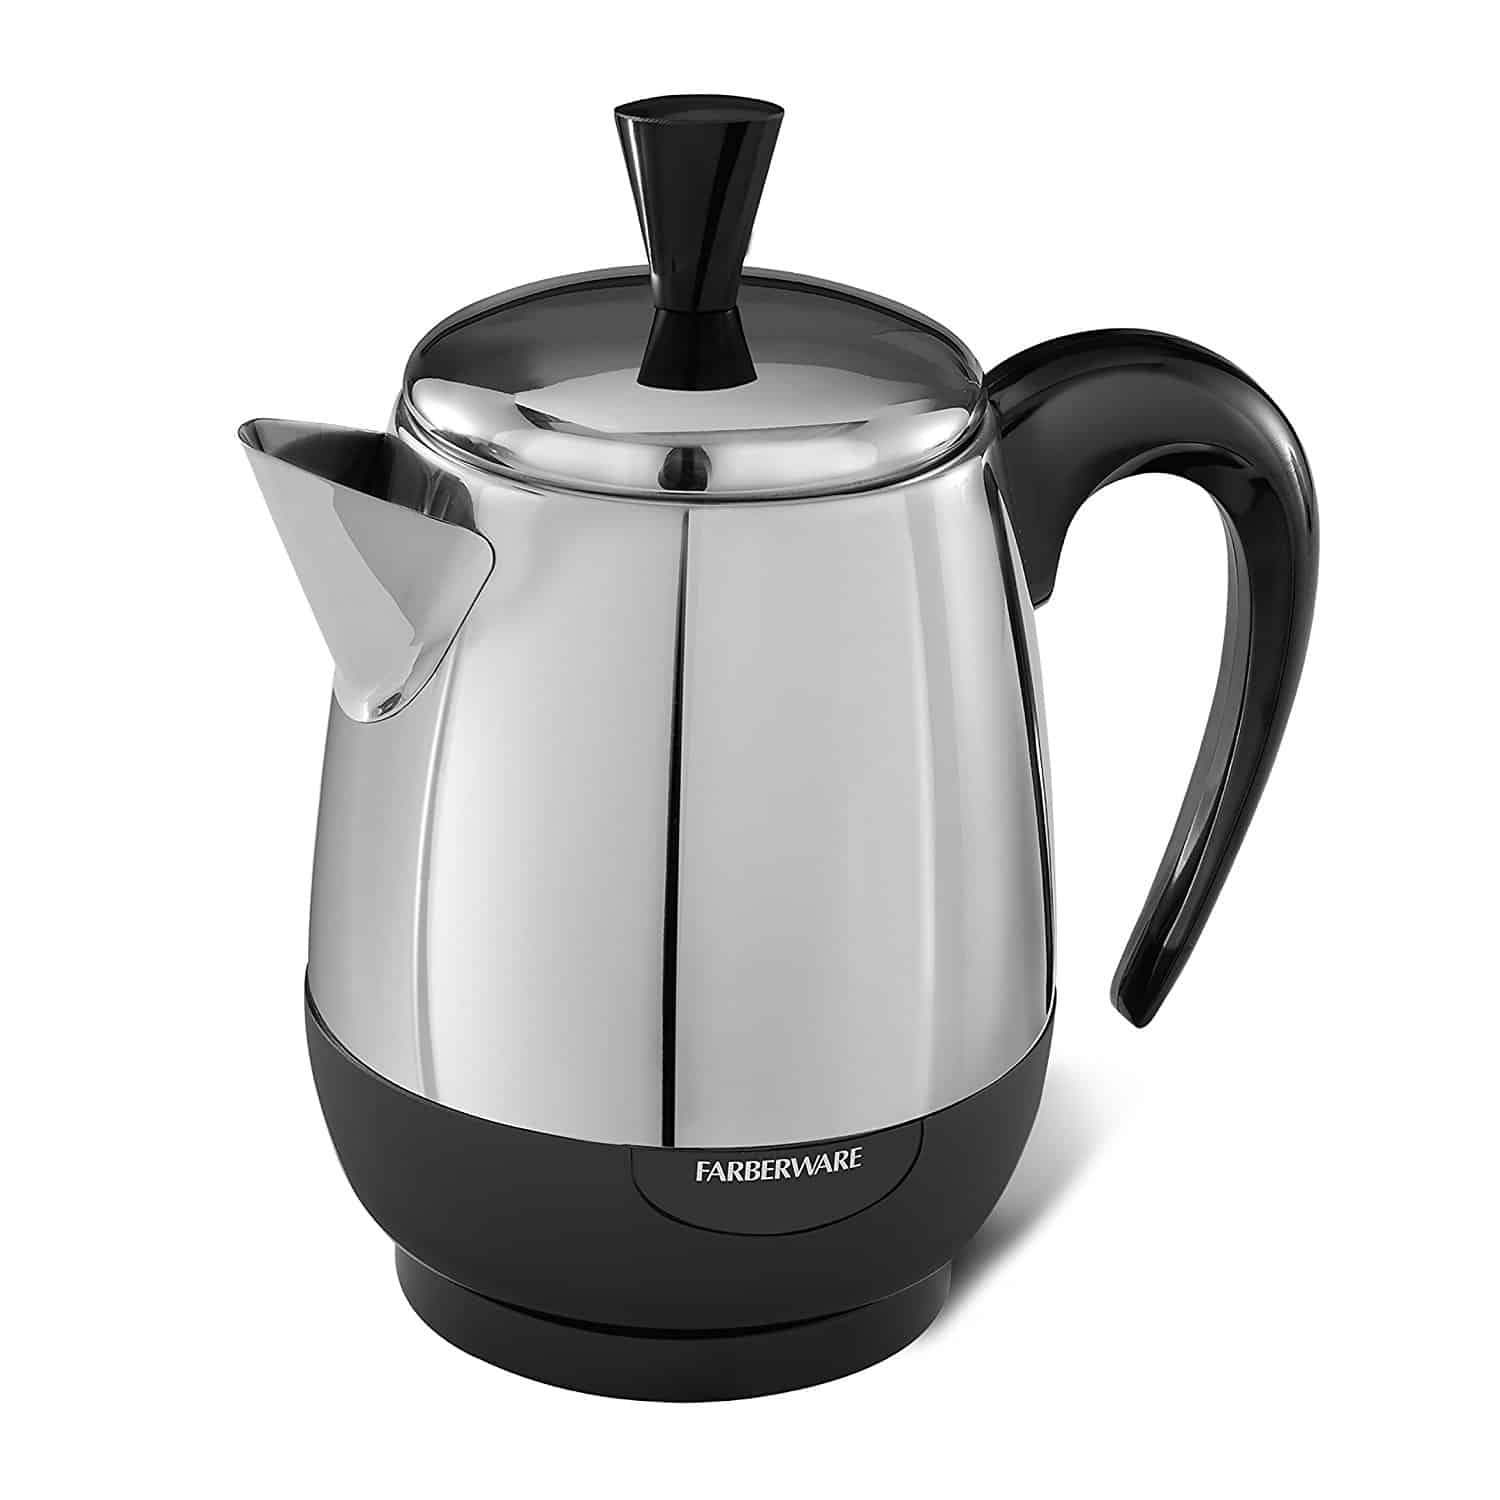 Small 4 Cup Capacity Faberware Coffee Maker